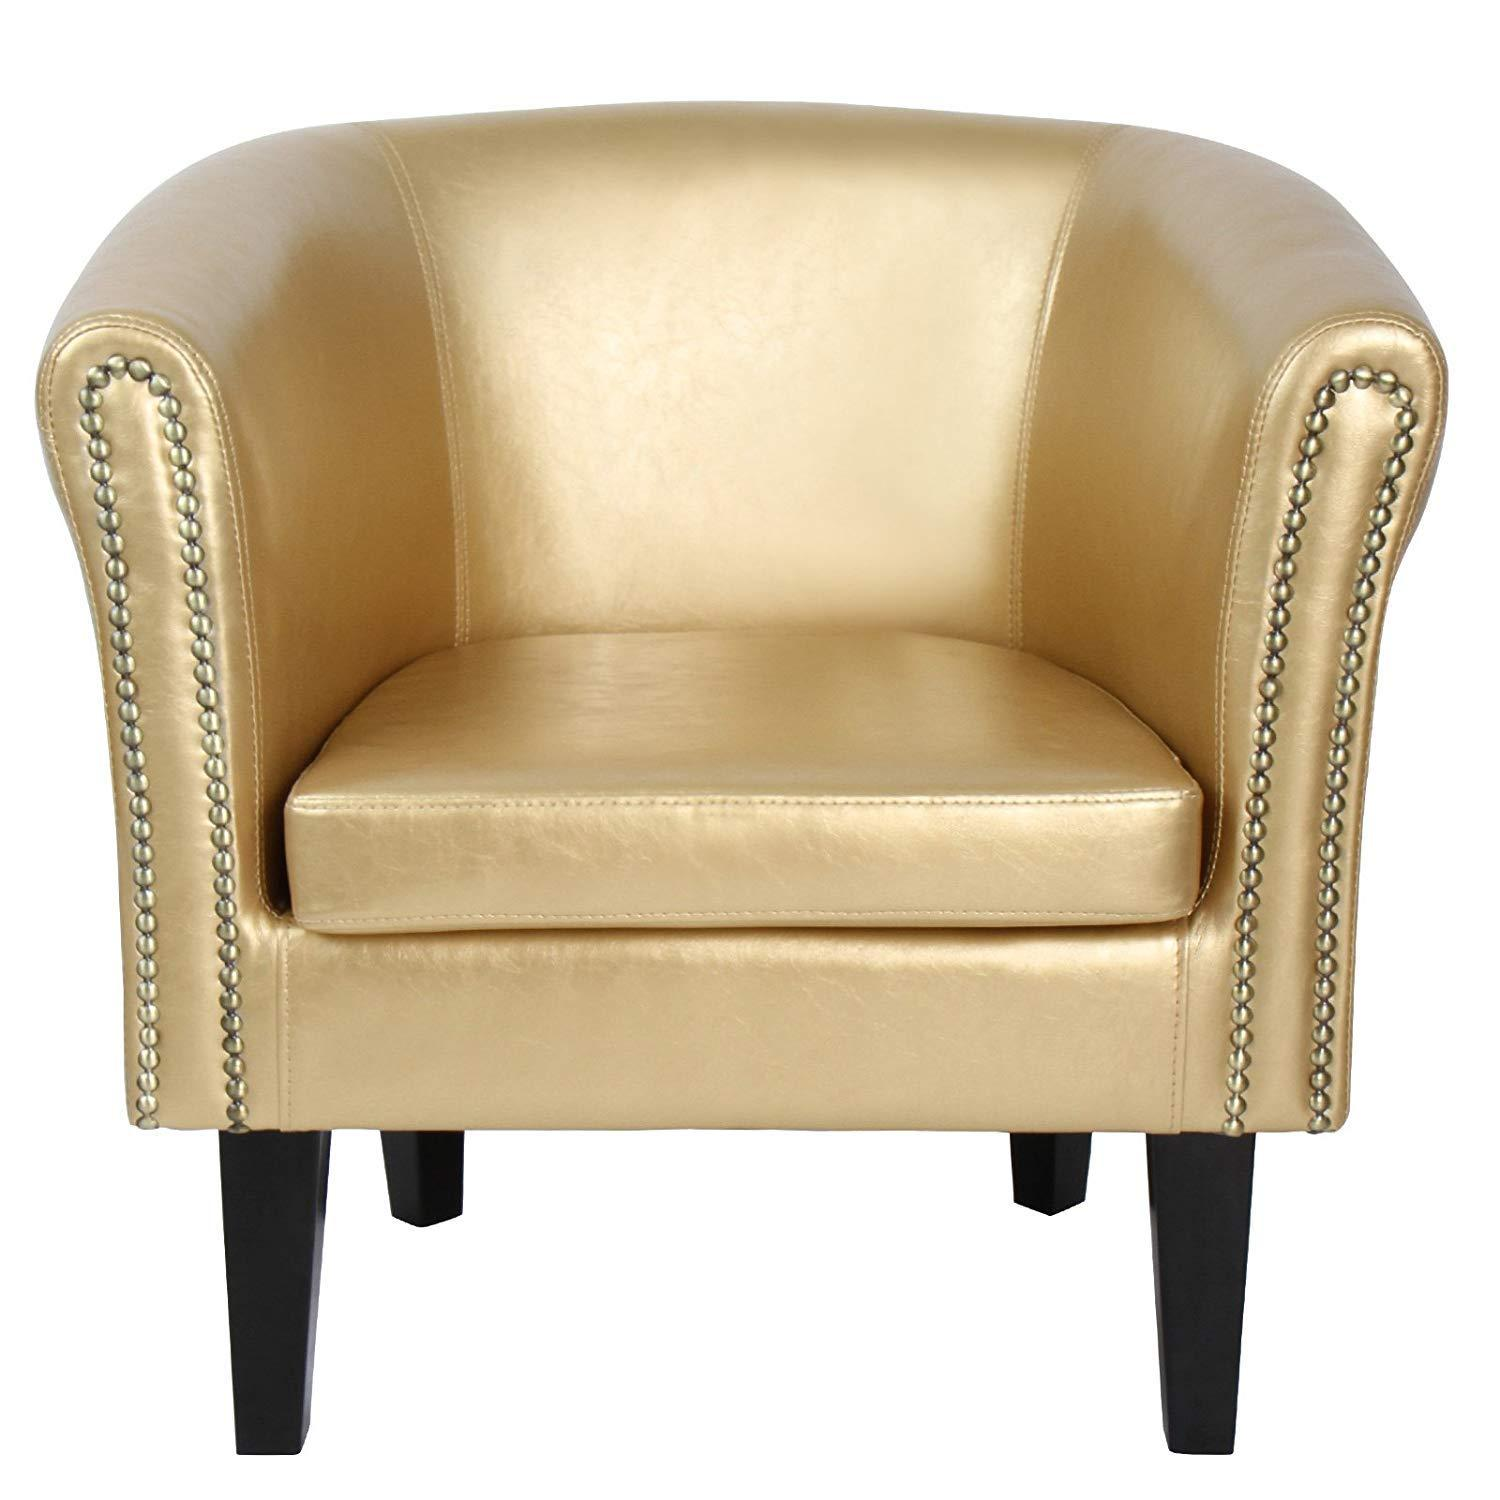 Chesterfield Armchair Stylish Tub Chair Home Furniture - Gold